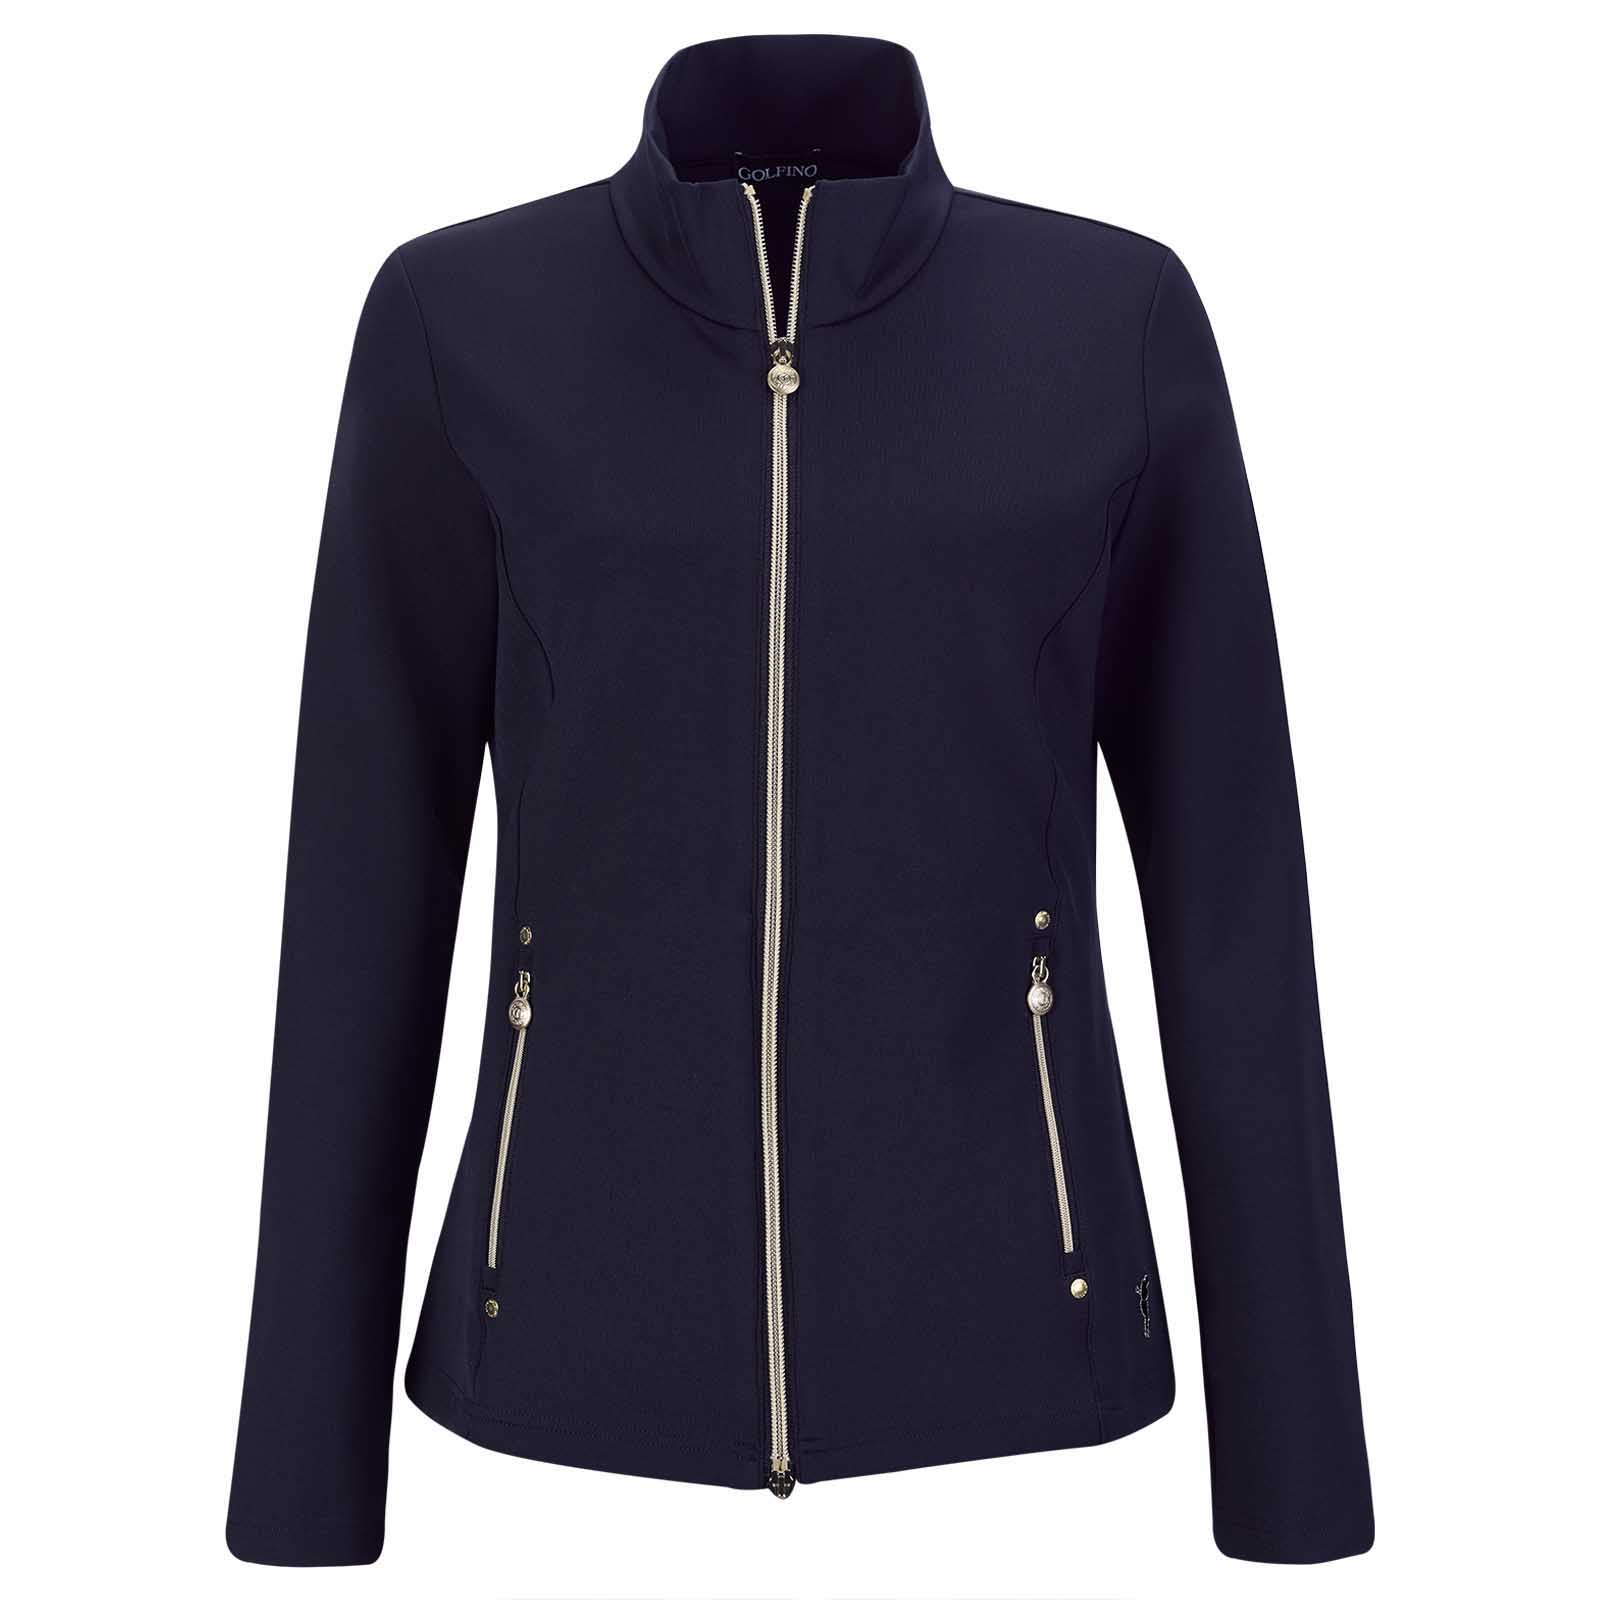 Damen Midlayer Stretch-Golfjacke aus exklusiver Cotton-Blend